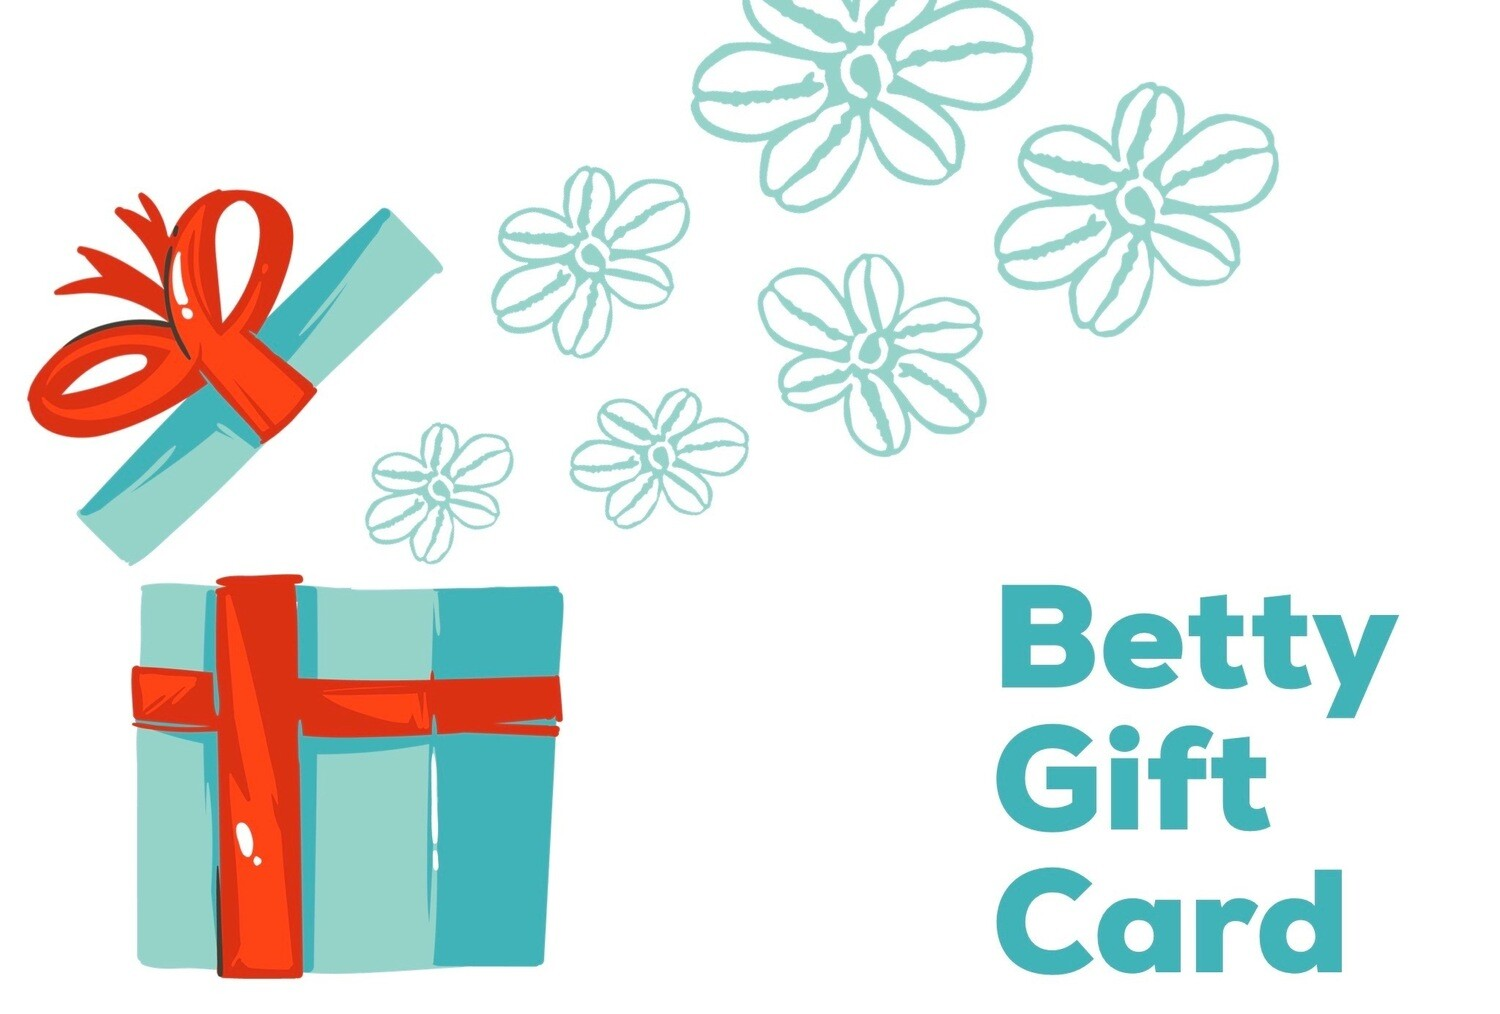 Betty Gift Card